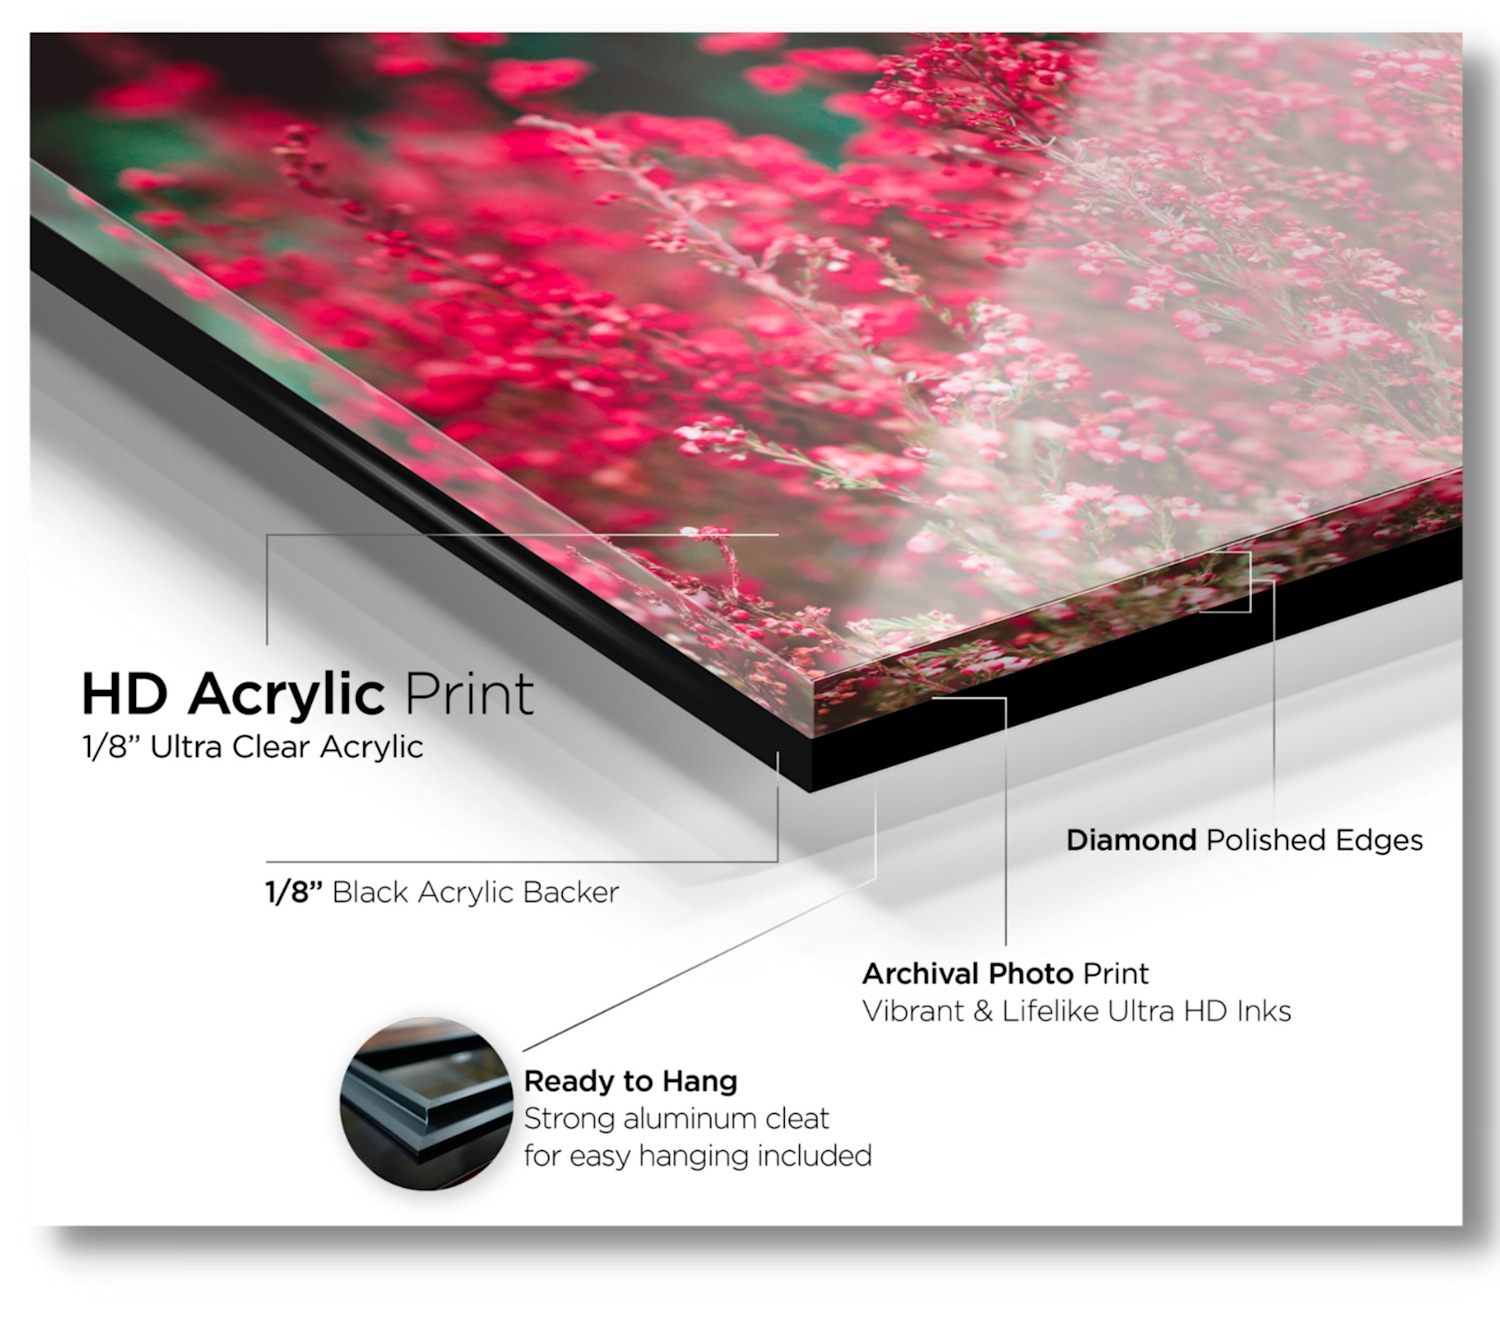 Top-notch materials and printing techniques allow an HD acrylic print with onyx backer to sometimes last over 100 years